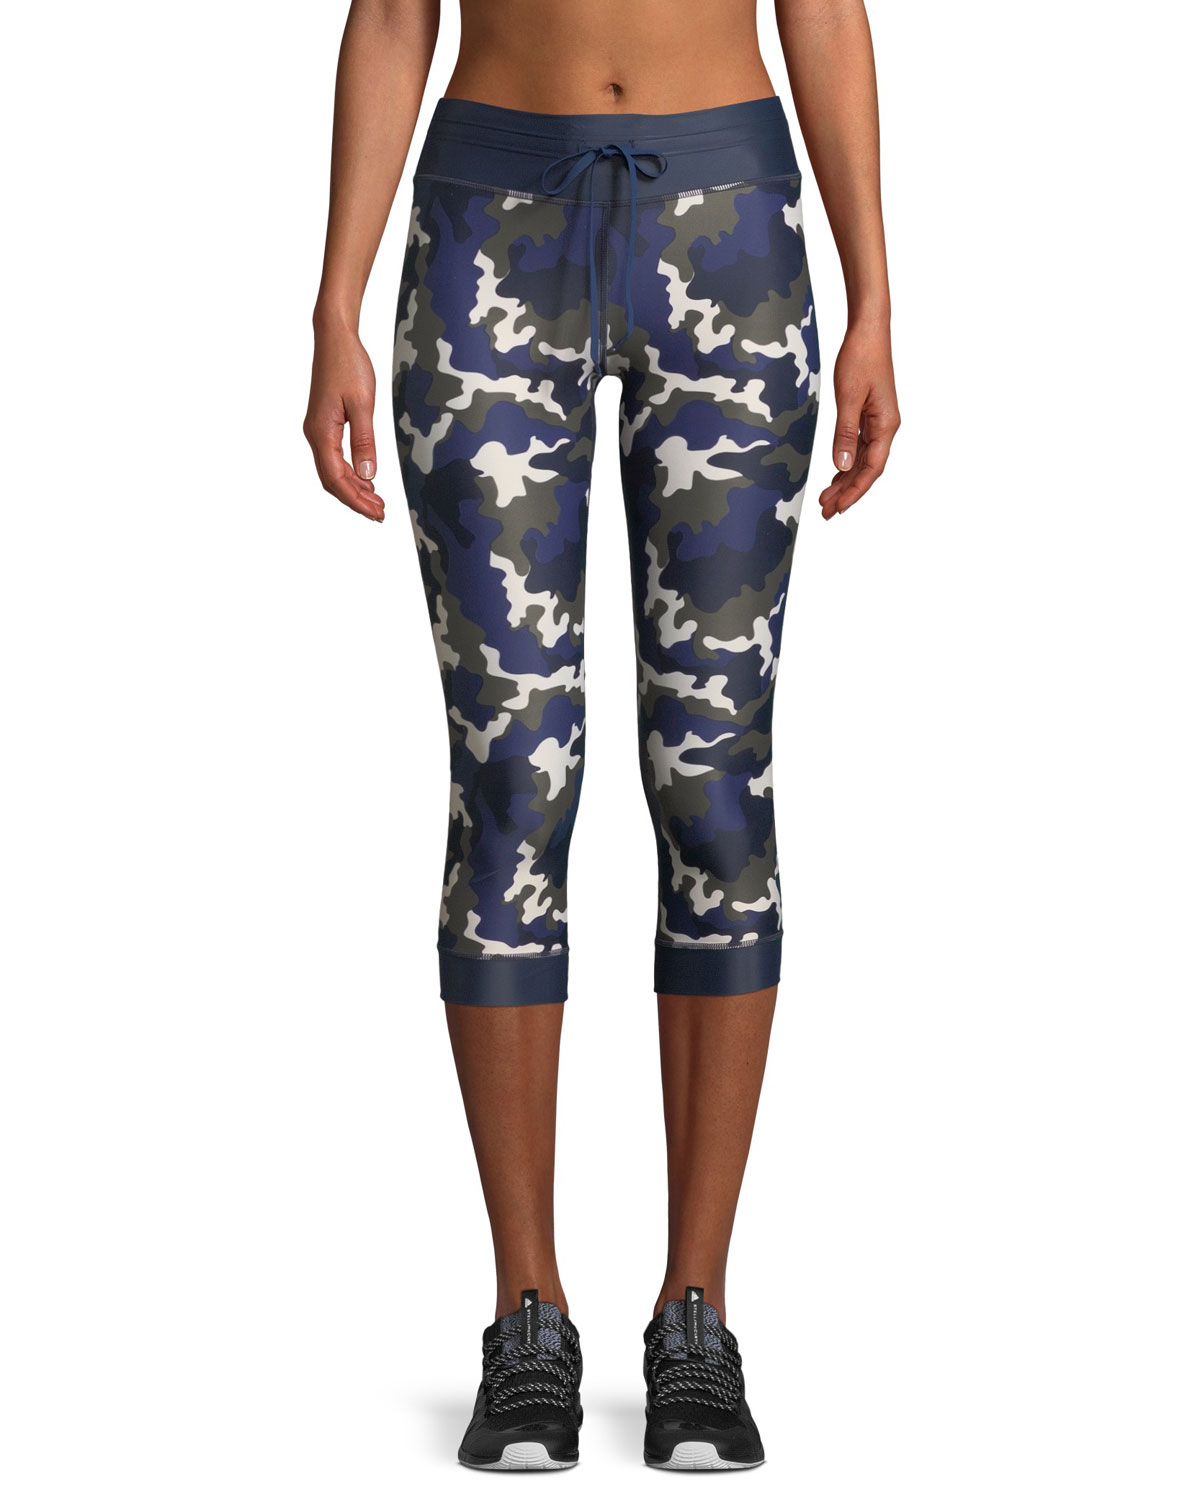 Nyc Camo-Print Cropped Leggings in Multicolour